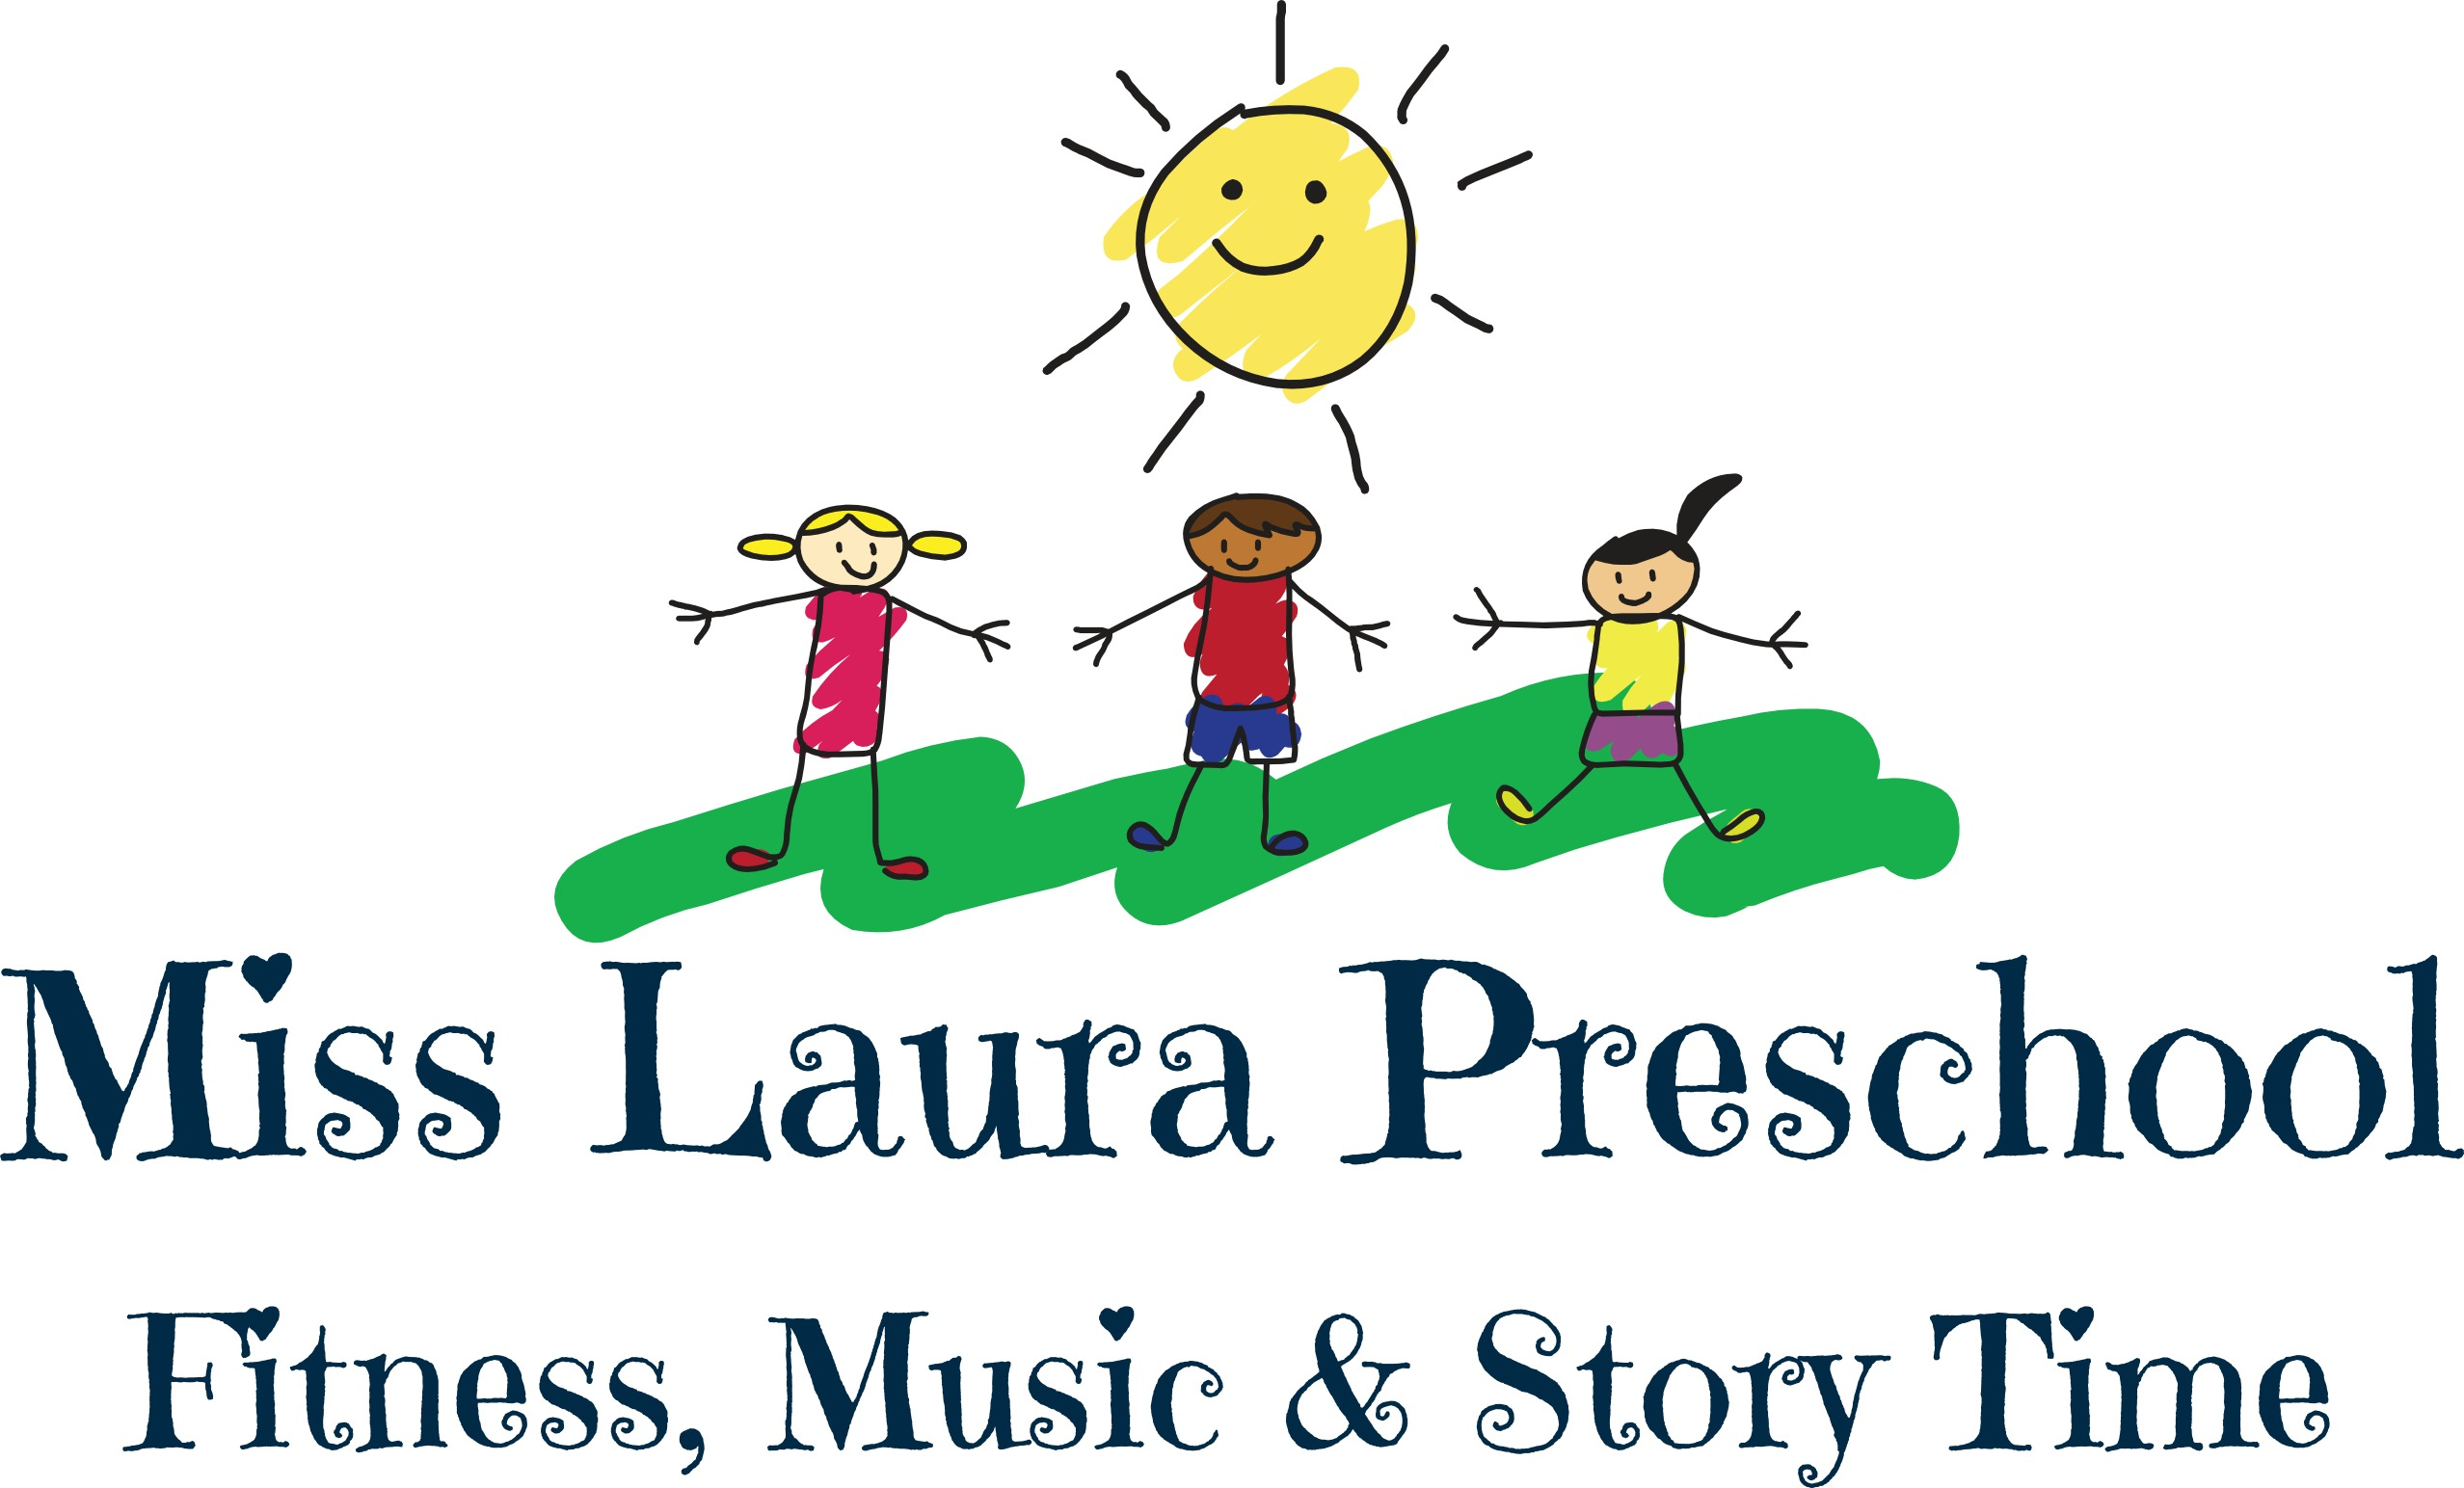 Miss Laura's Preschool Fun